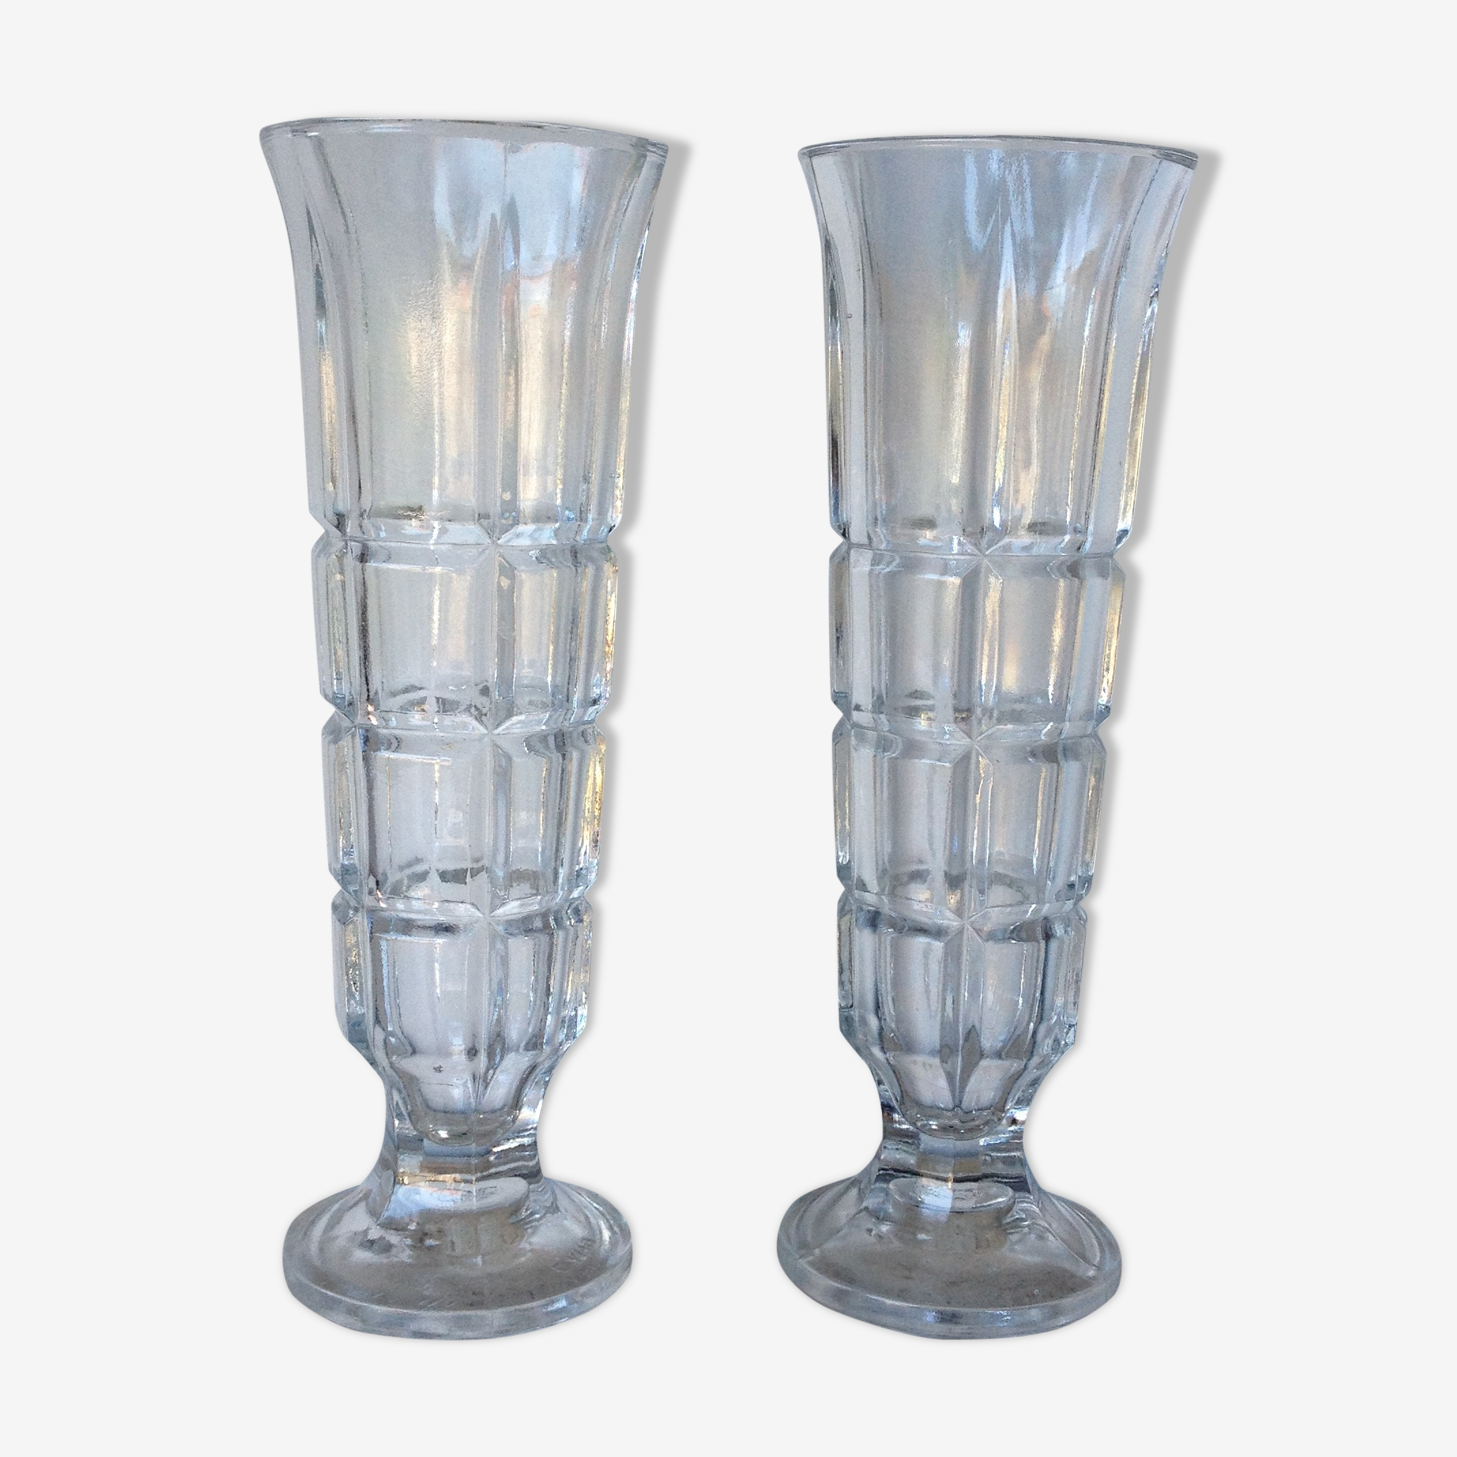 Duo of italian glass vases